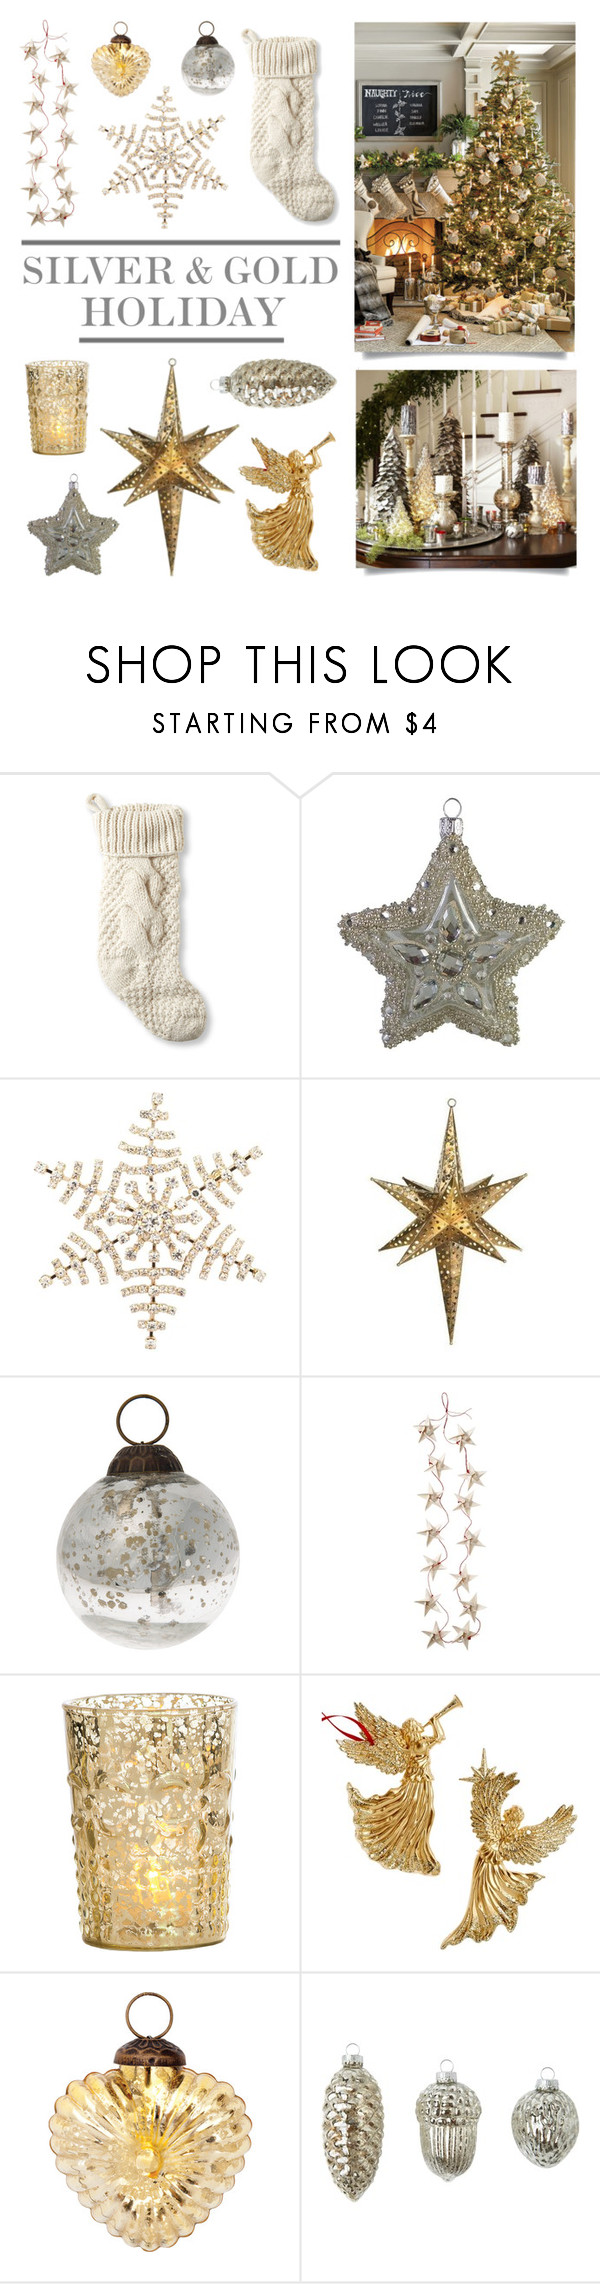 """Silver & Gold Holiday"" by lgb321 ❤ liked on Polyvore featuring interior, interiors, interior design, home, home decor, interior decorating, L.L.Bean, Nordstrom, Disney and Cultural Intrigue"